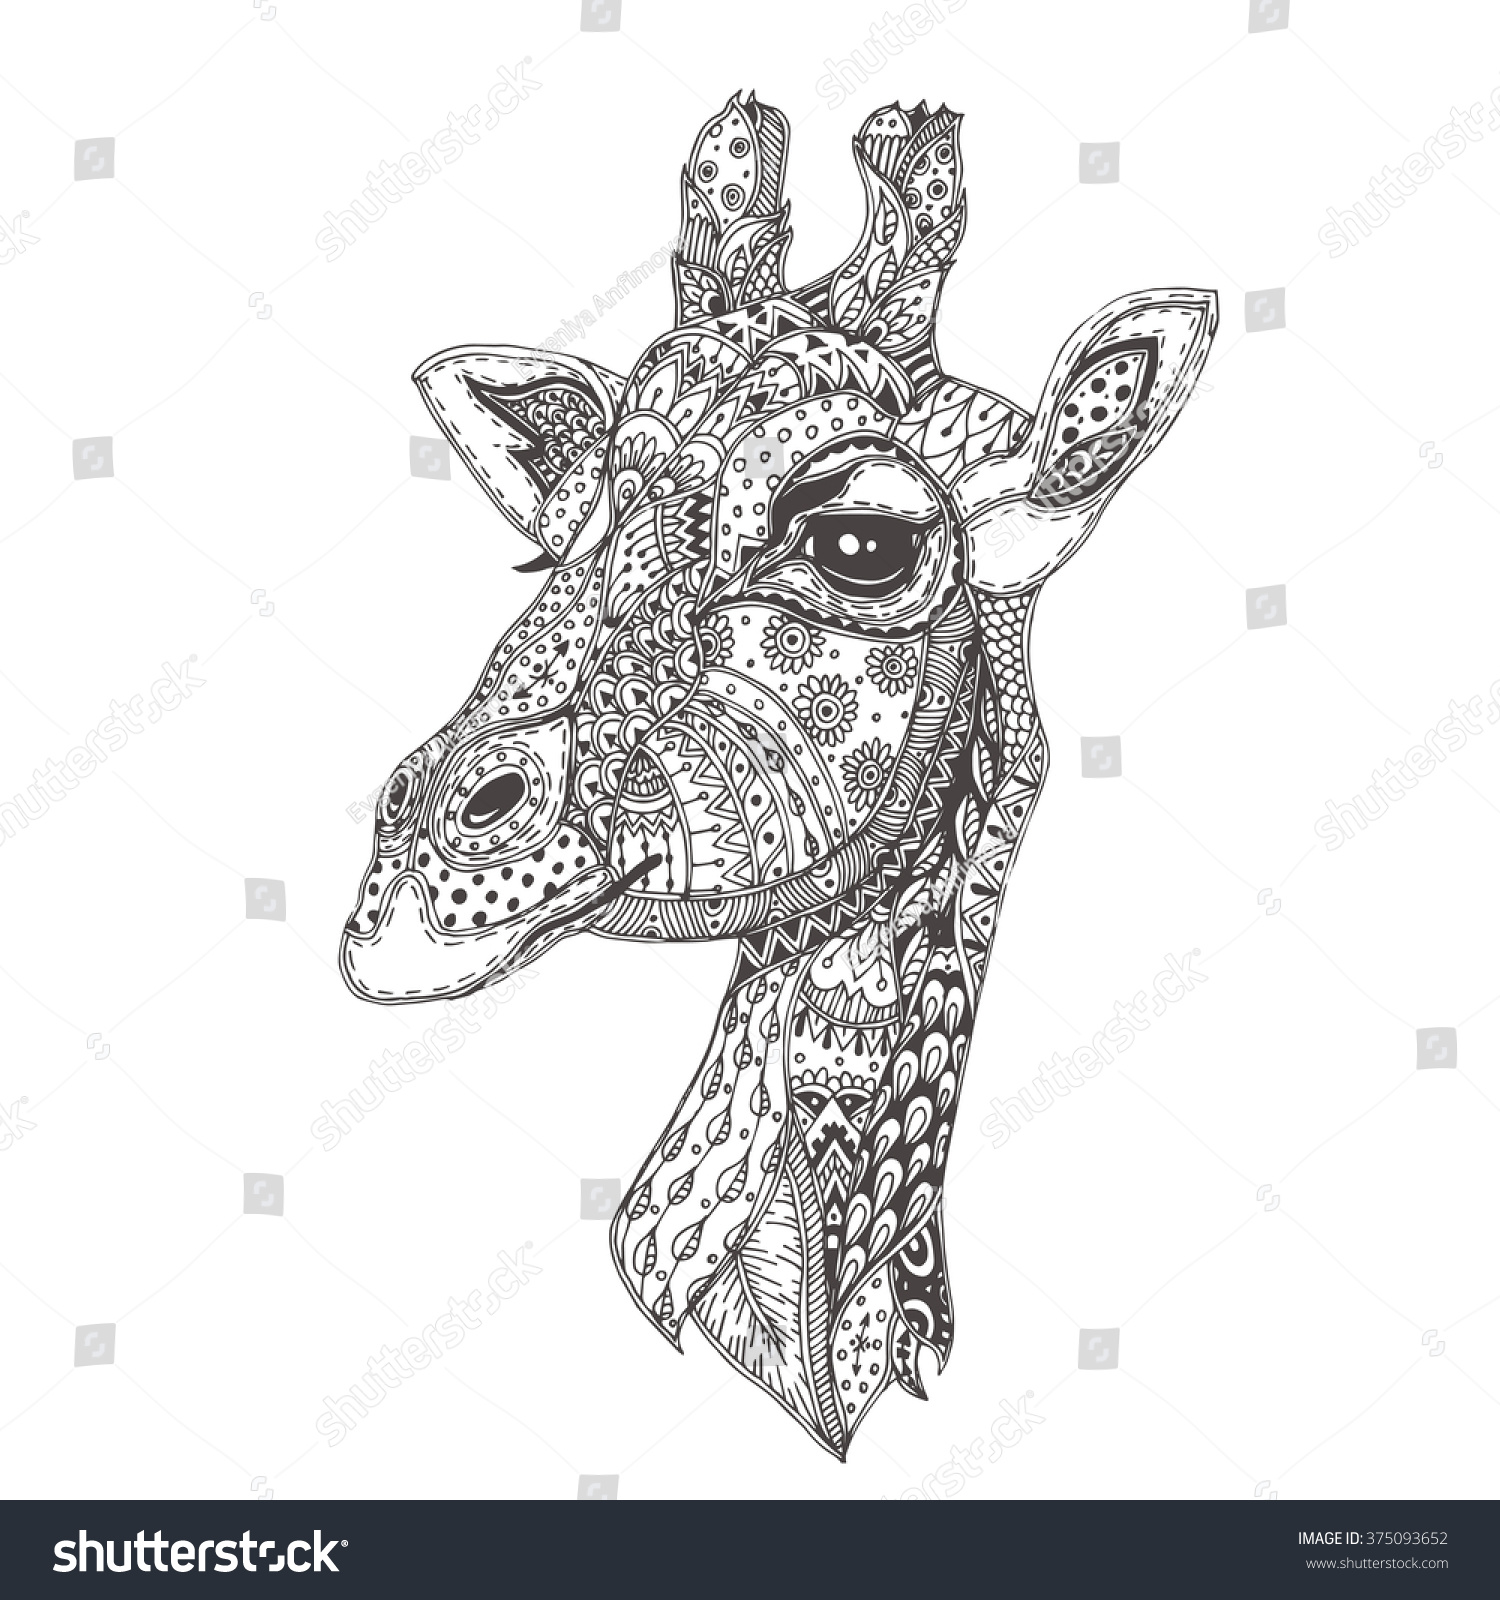 Coloring pages for adults giraffe - Hand Drawn Giraffe With Ethnic Floral Doodle Pattern Coloring Page Zendala Design